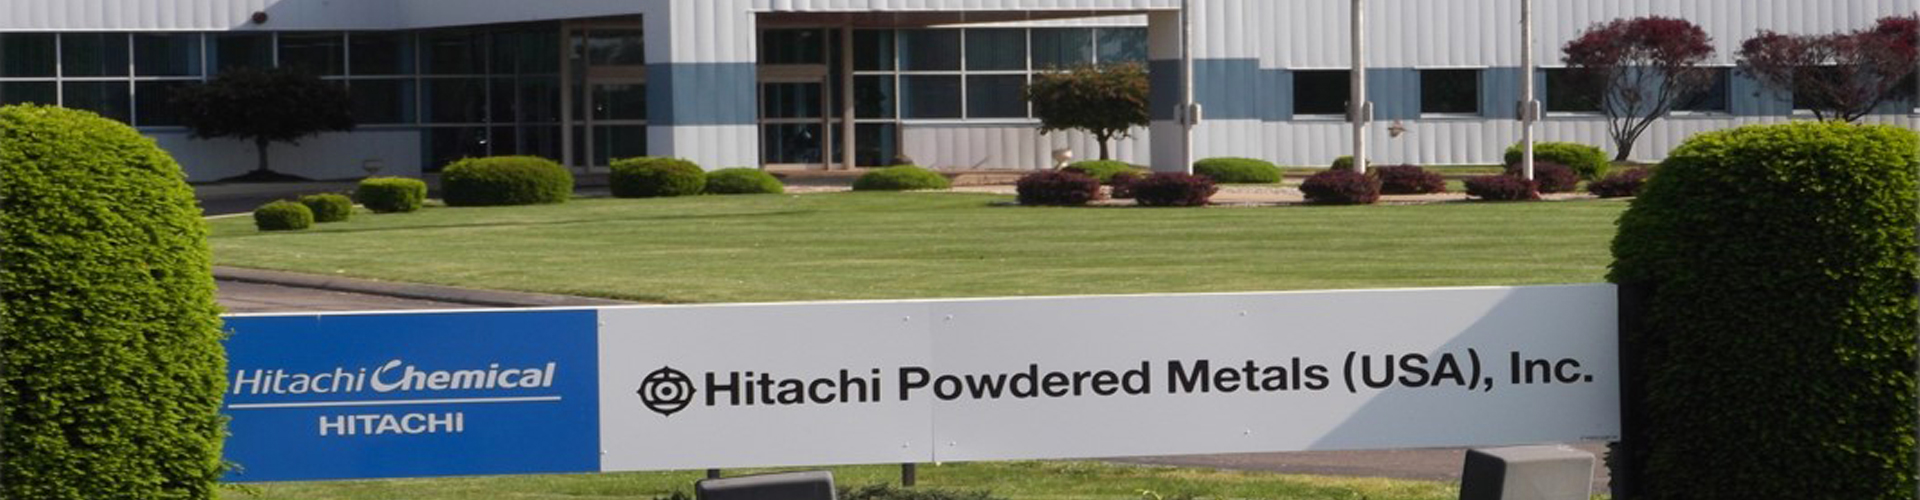 Hitachi Powdered Metals (USA), Inc.